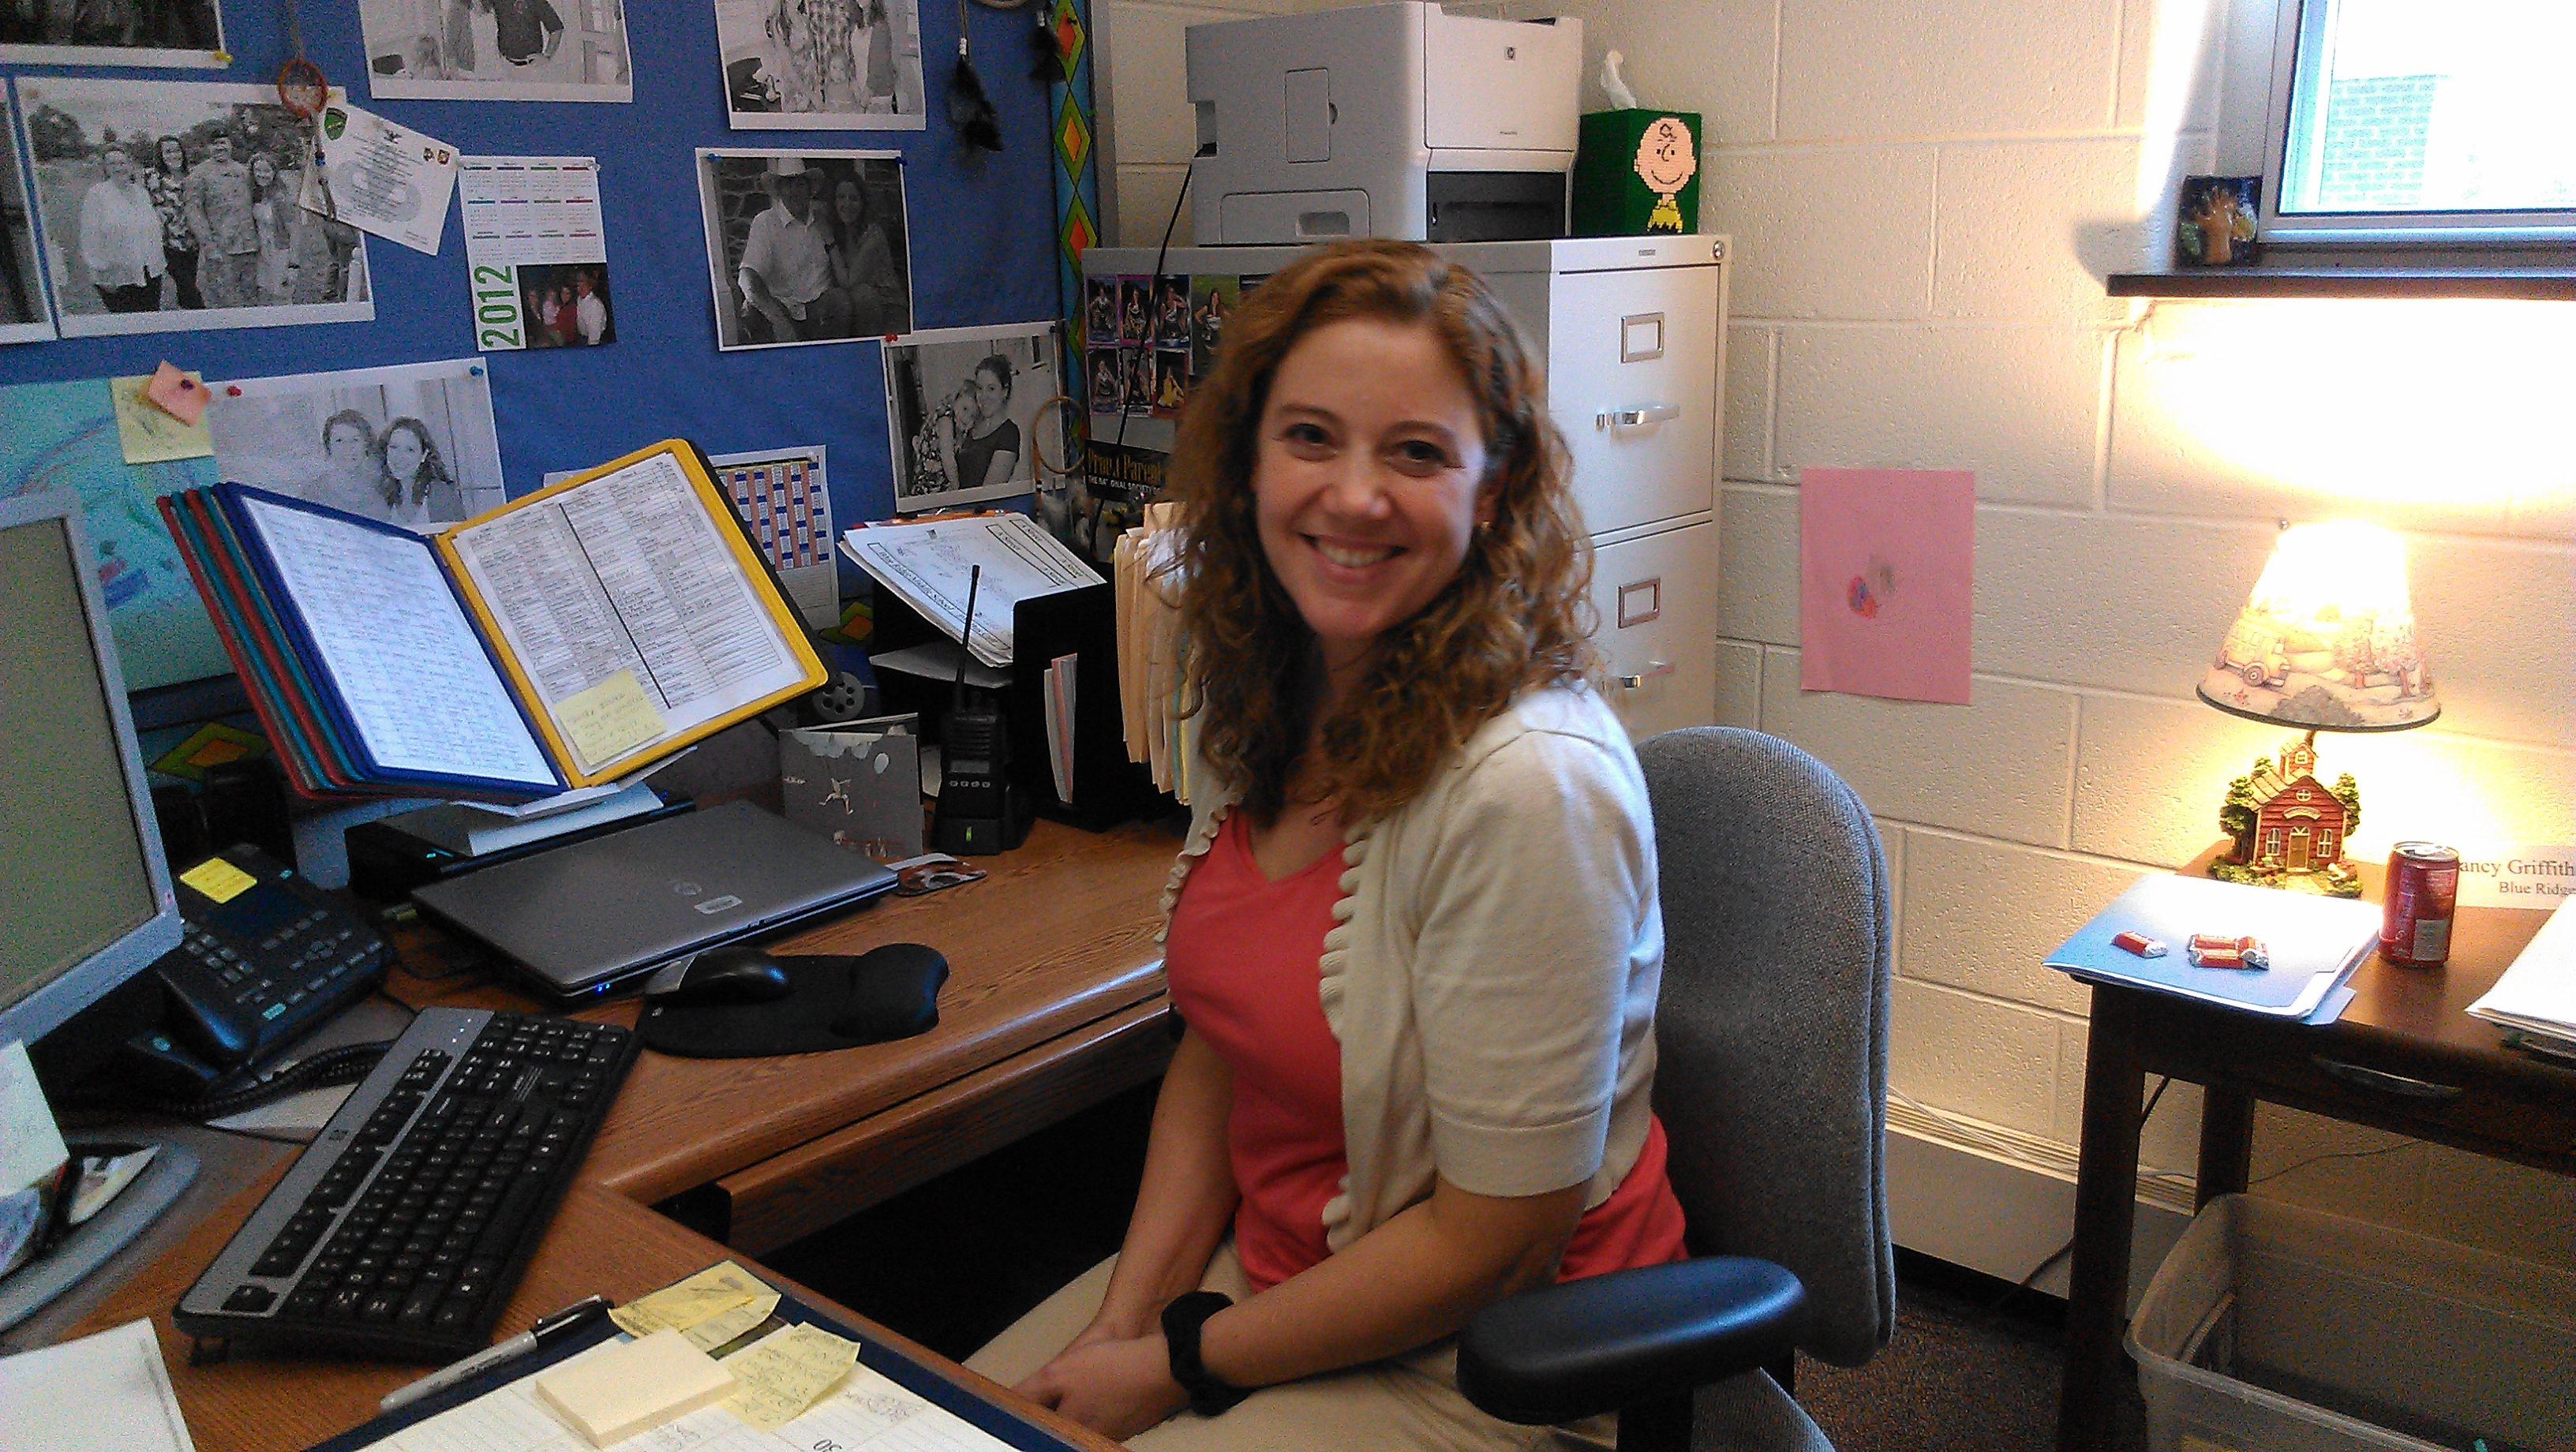 Griffith-Cochran, Nancy - Assistant Principal / Welcome